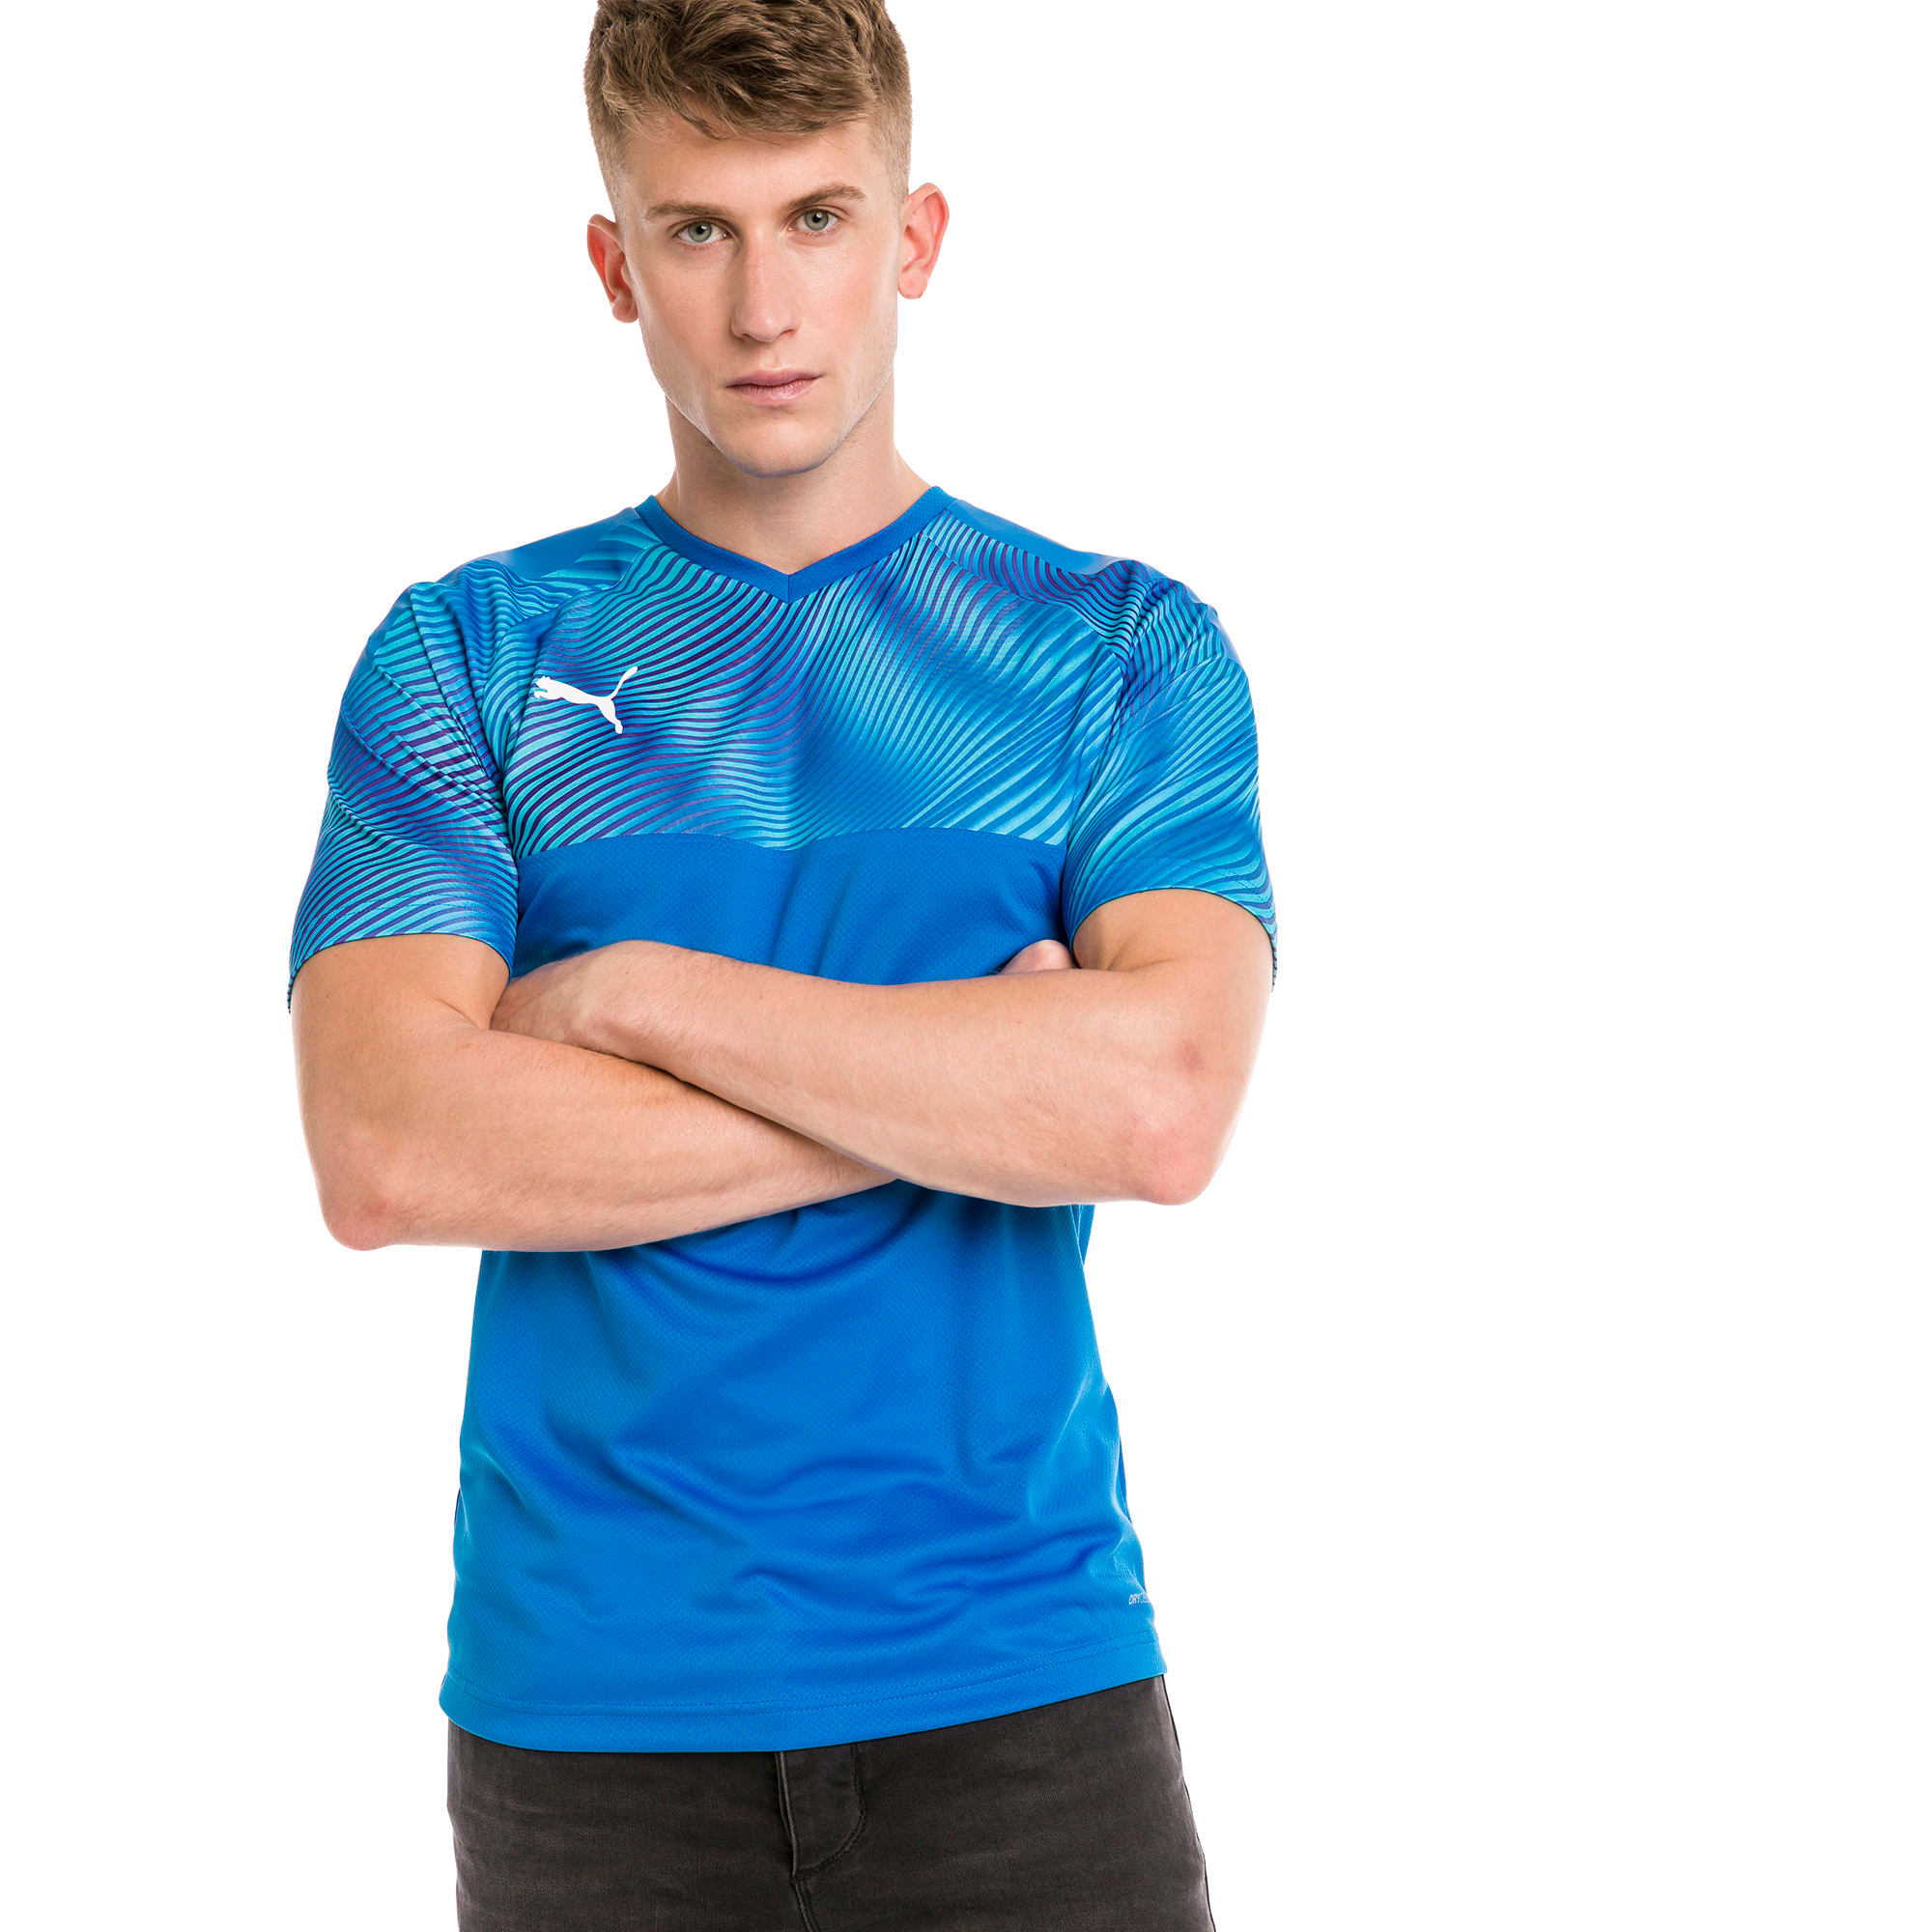 CUP Men's Football Jersey, Electric, large